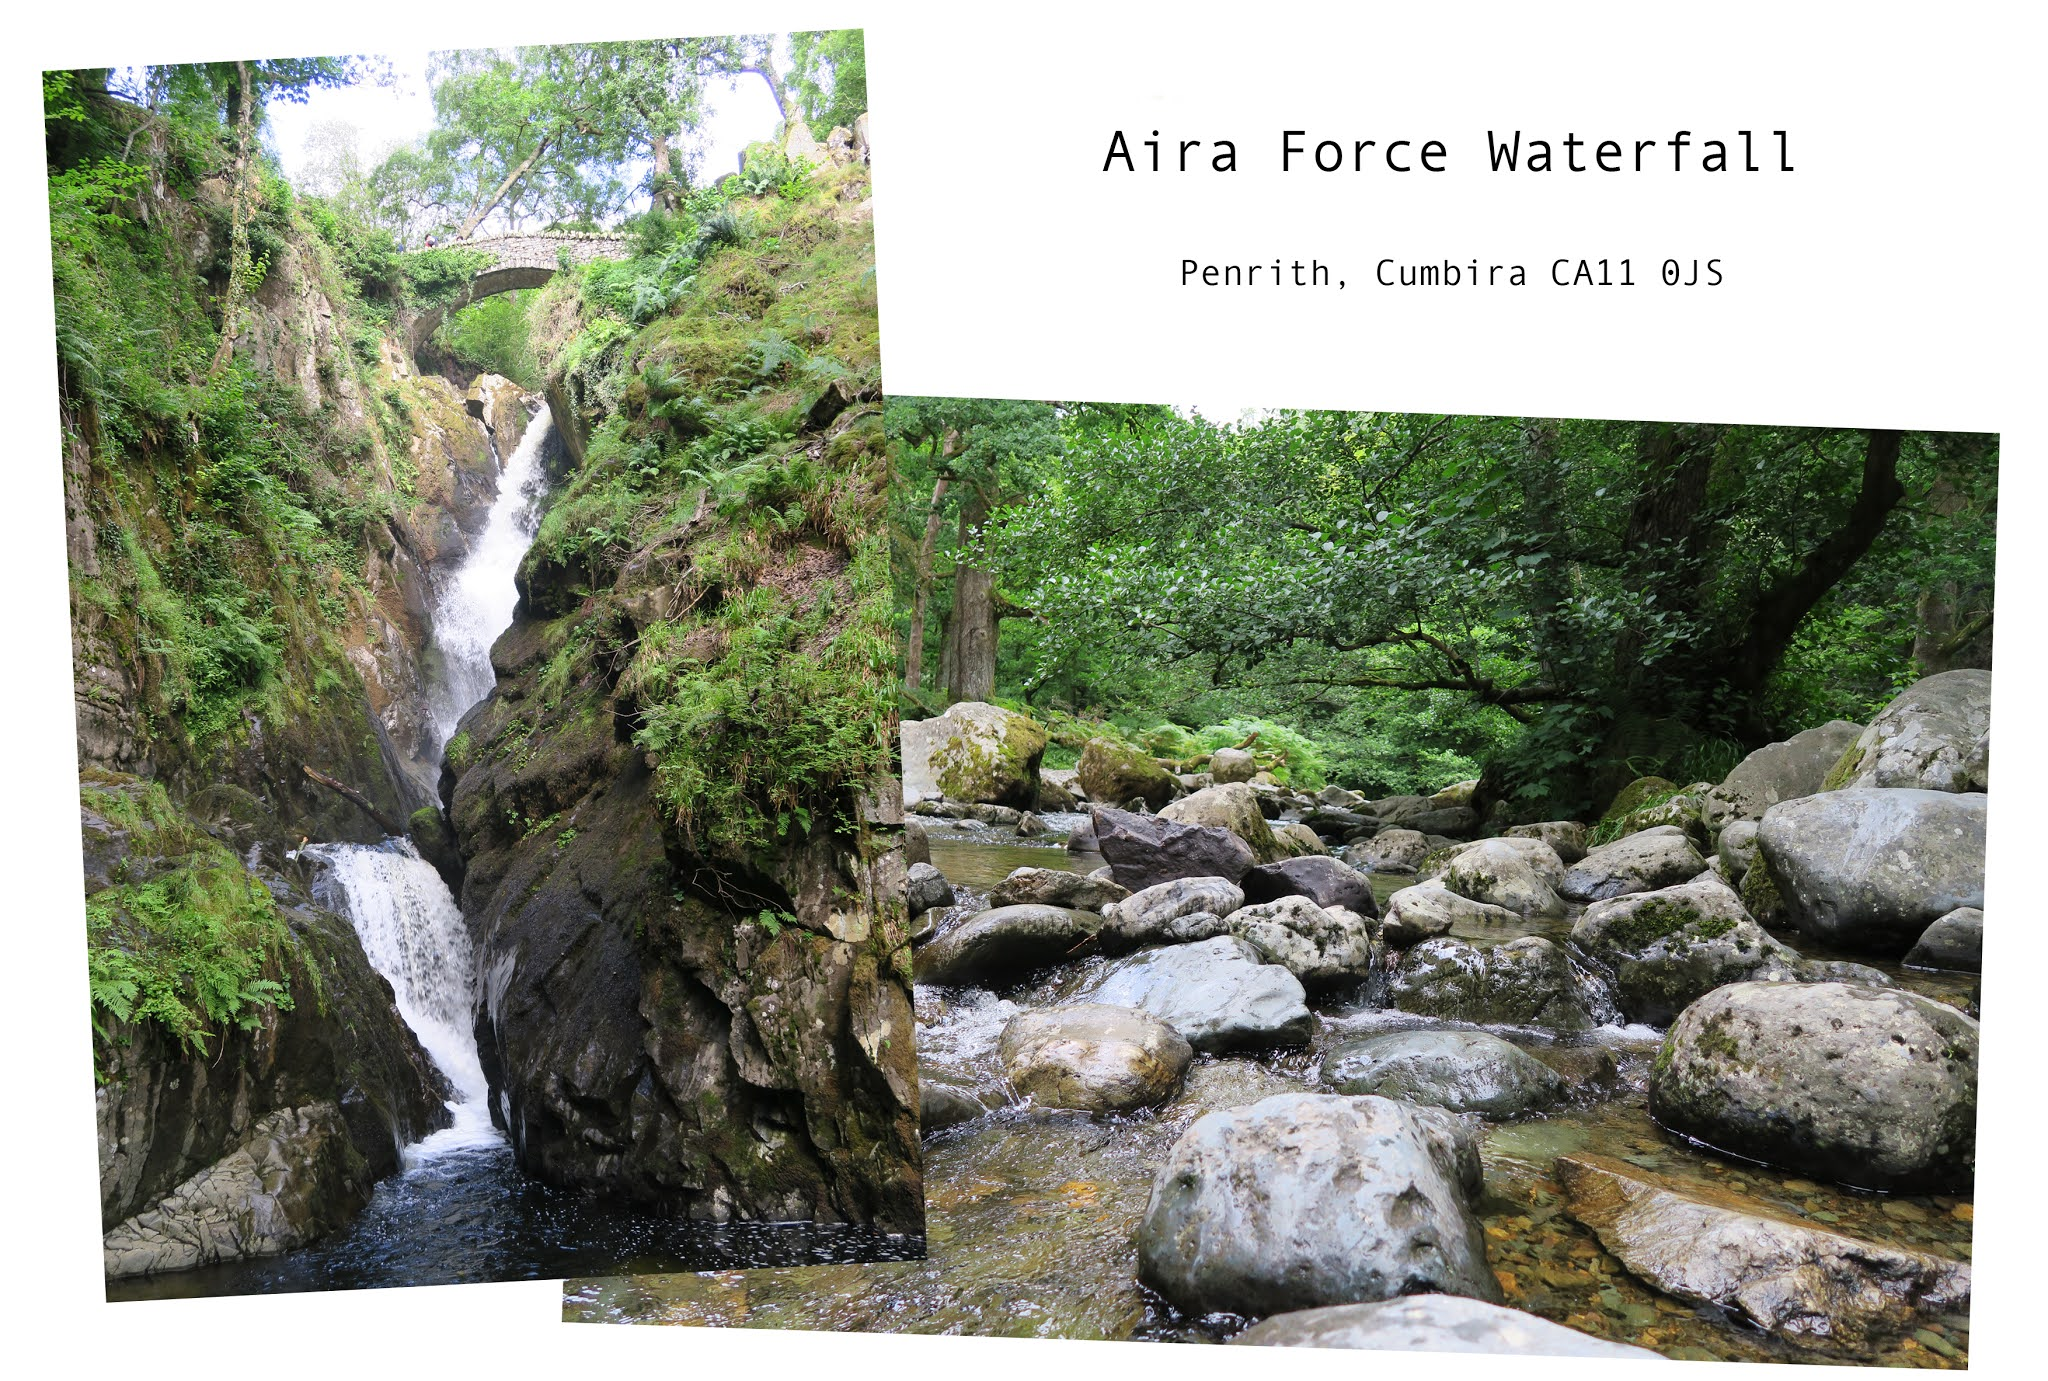 two images. the first is of a tall waterfall. the second is of a wide bubbling stream